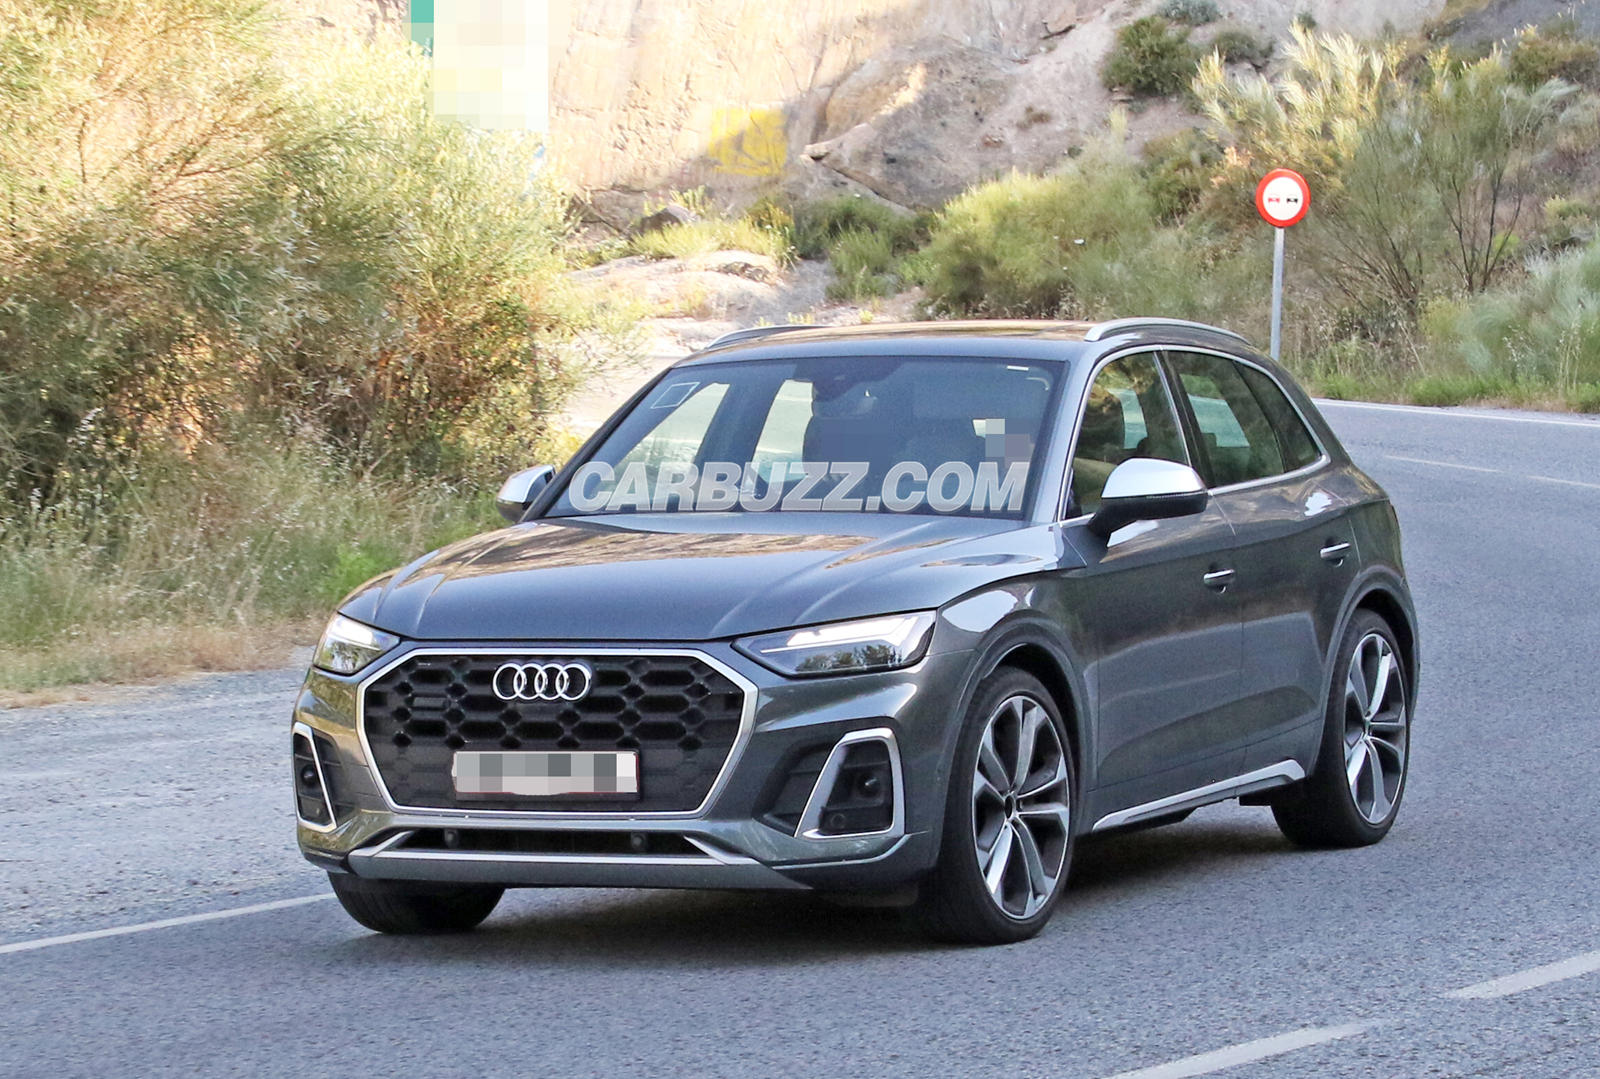 2021 Audi SQ5 Spied Completely Naked